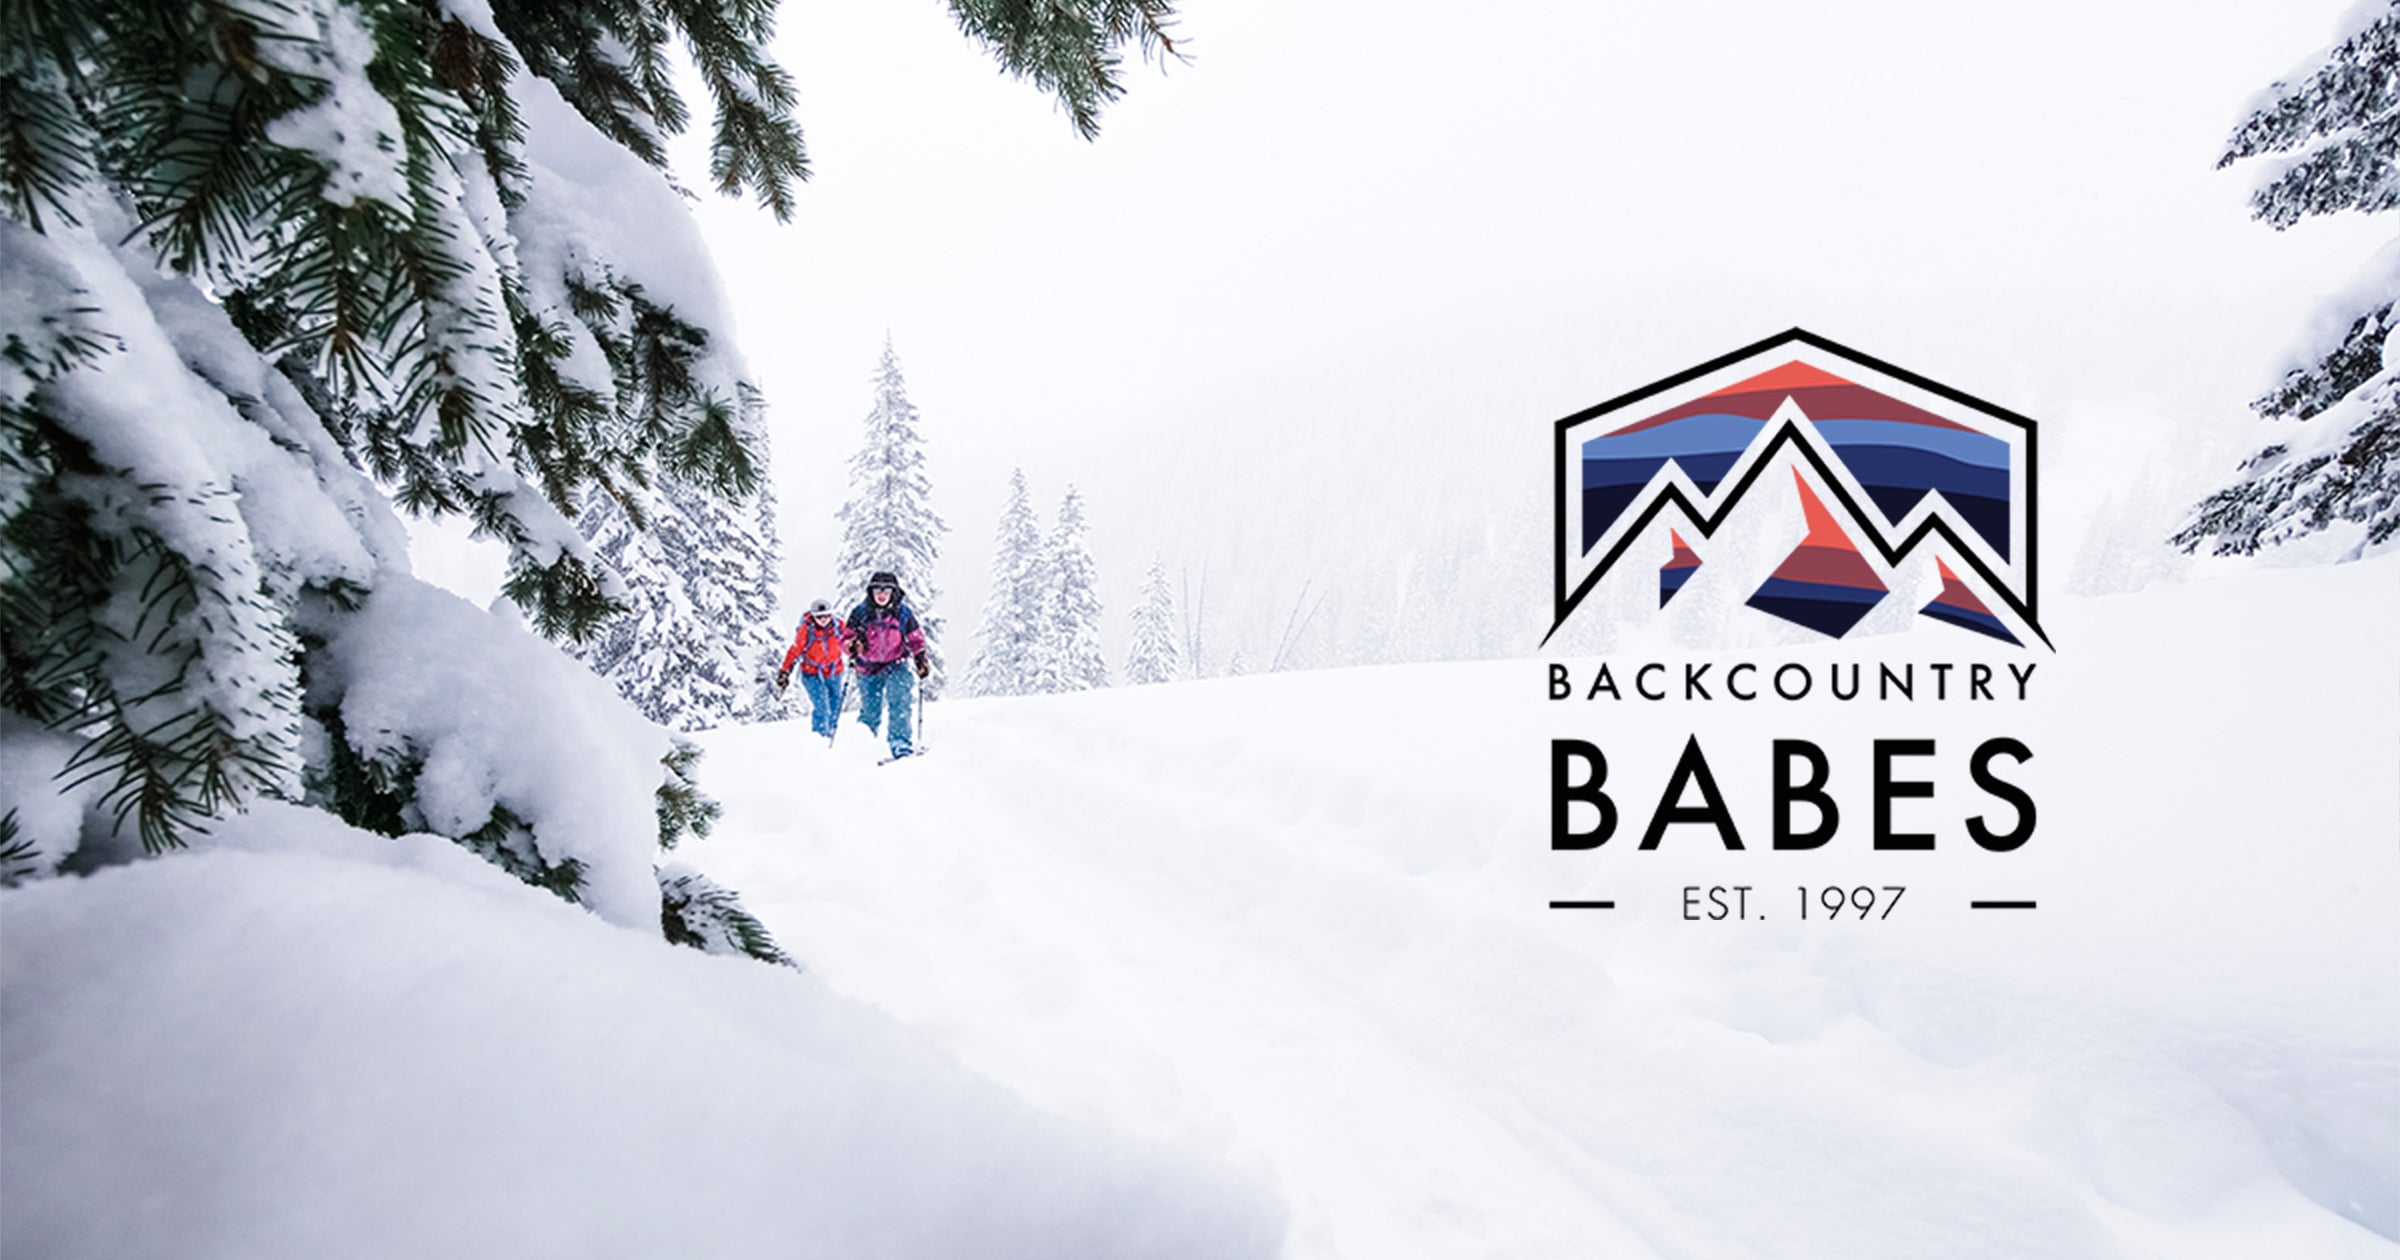 backcountry babes avalanche education scholarship